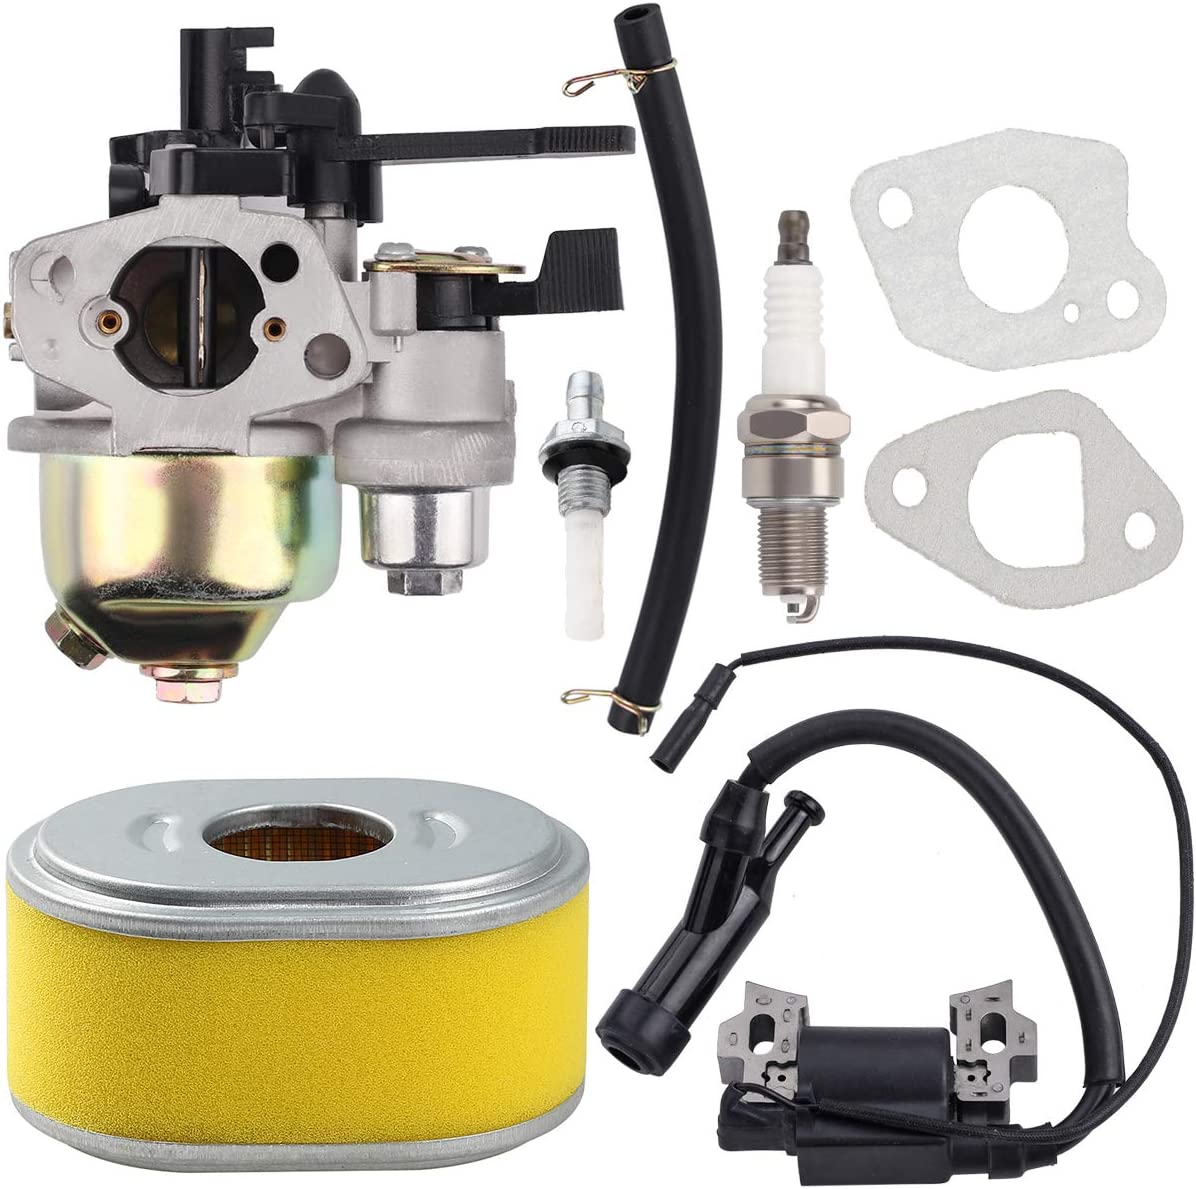 Hipa Carburetor with Air Filter Ignition Coil Tank Joint Filter for Honda GX110 GX120 Engine